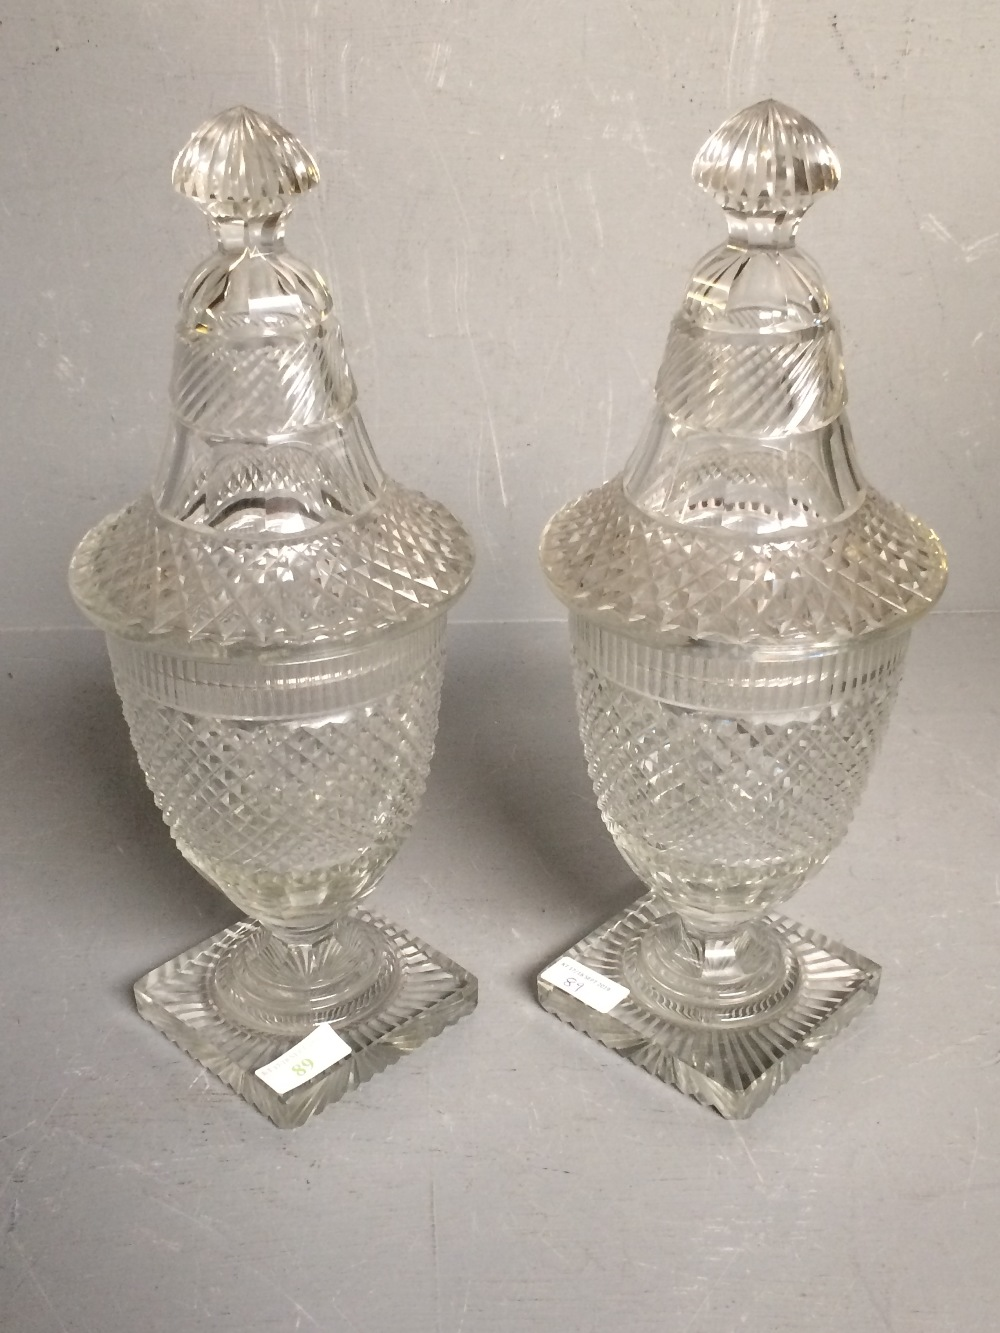 Lot 89 - Pair of hobnail cut glass sweet meat jars with lids 37.5 cm